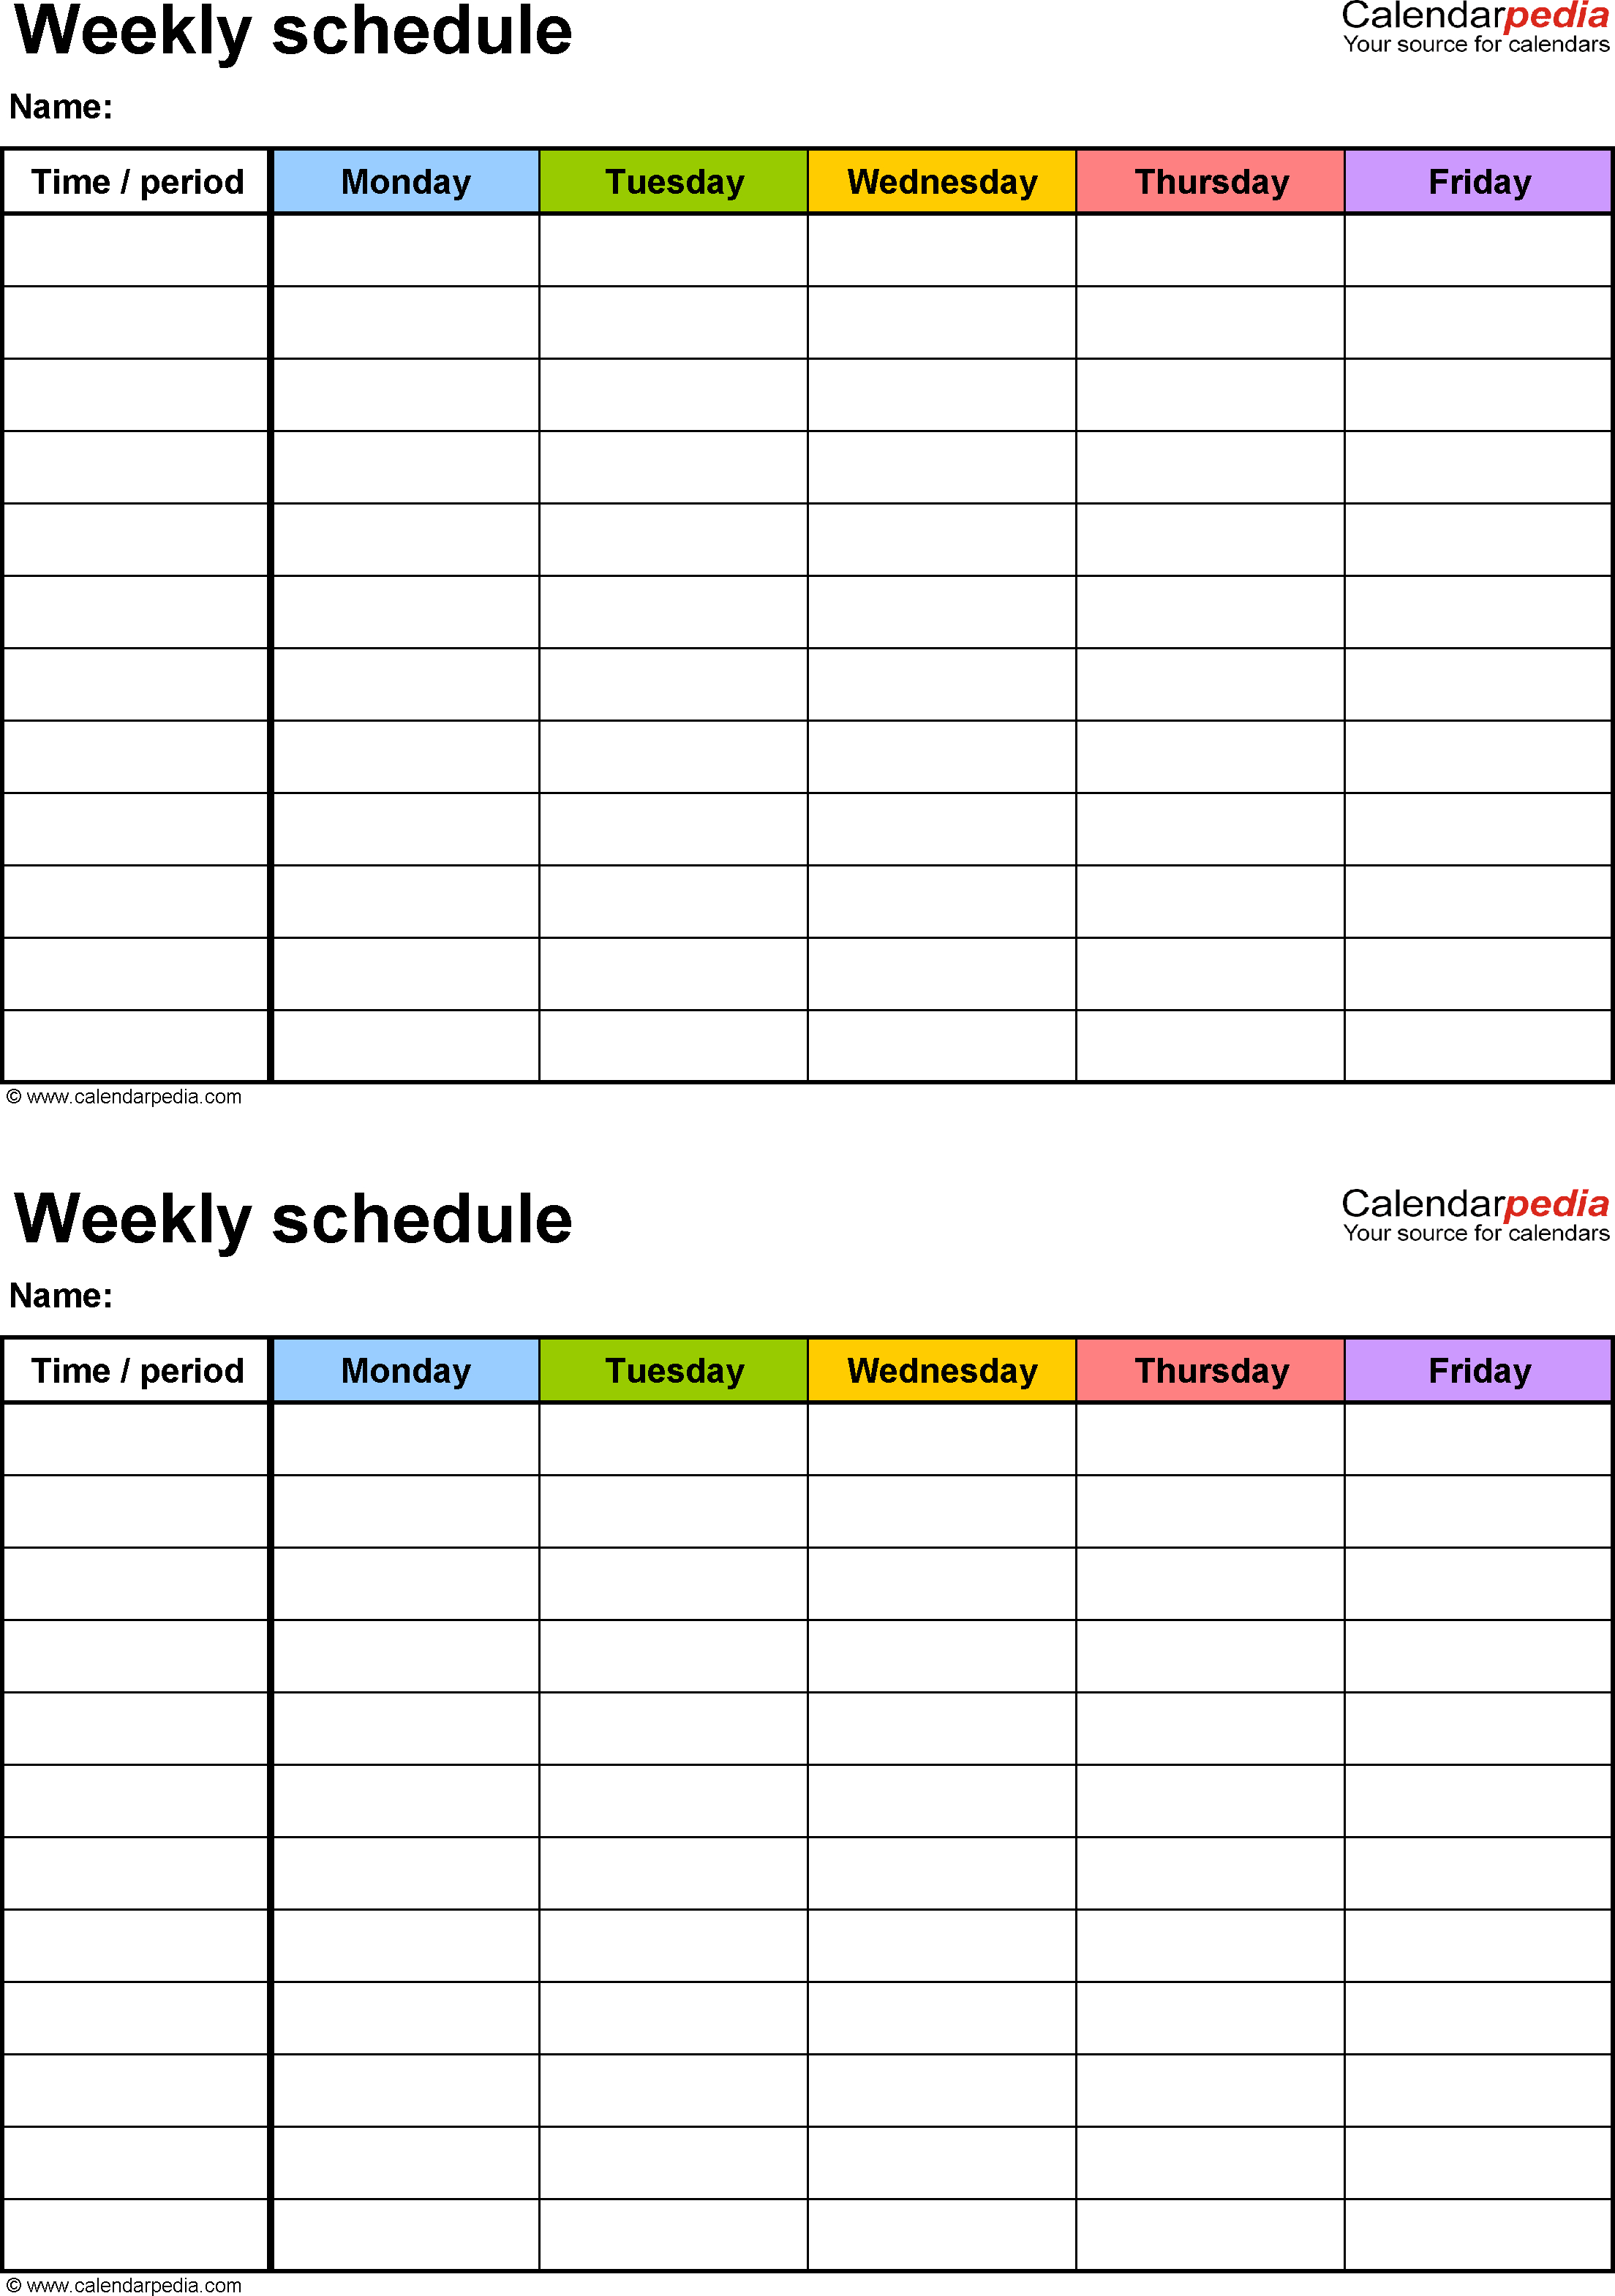 Free Weekly Schedule Templates For Pdf - 18 Templates regarding Weekly Blank Calendar Printable Pdf